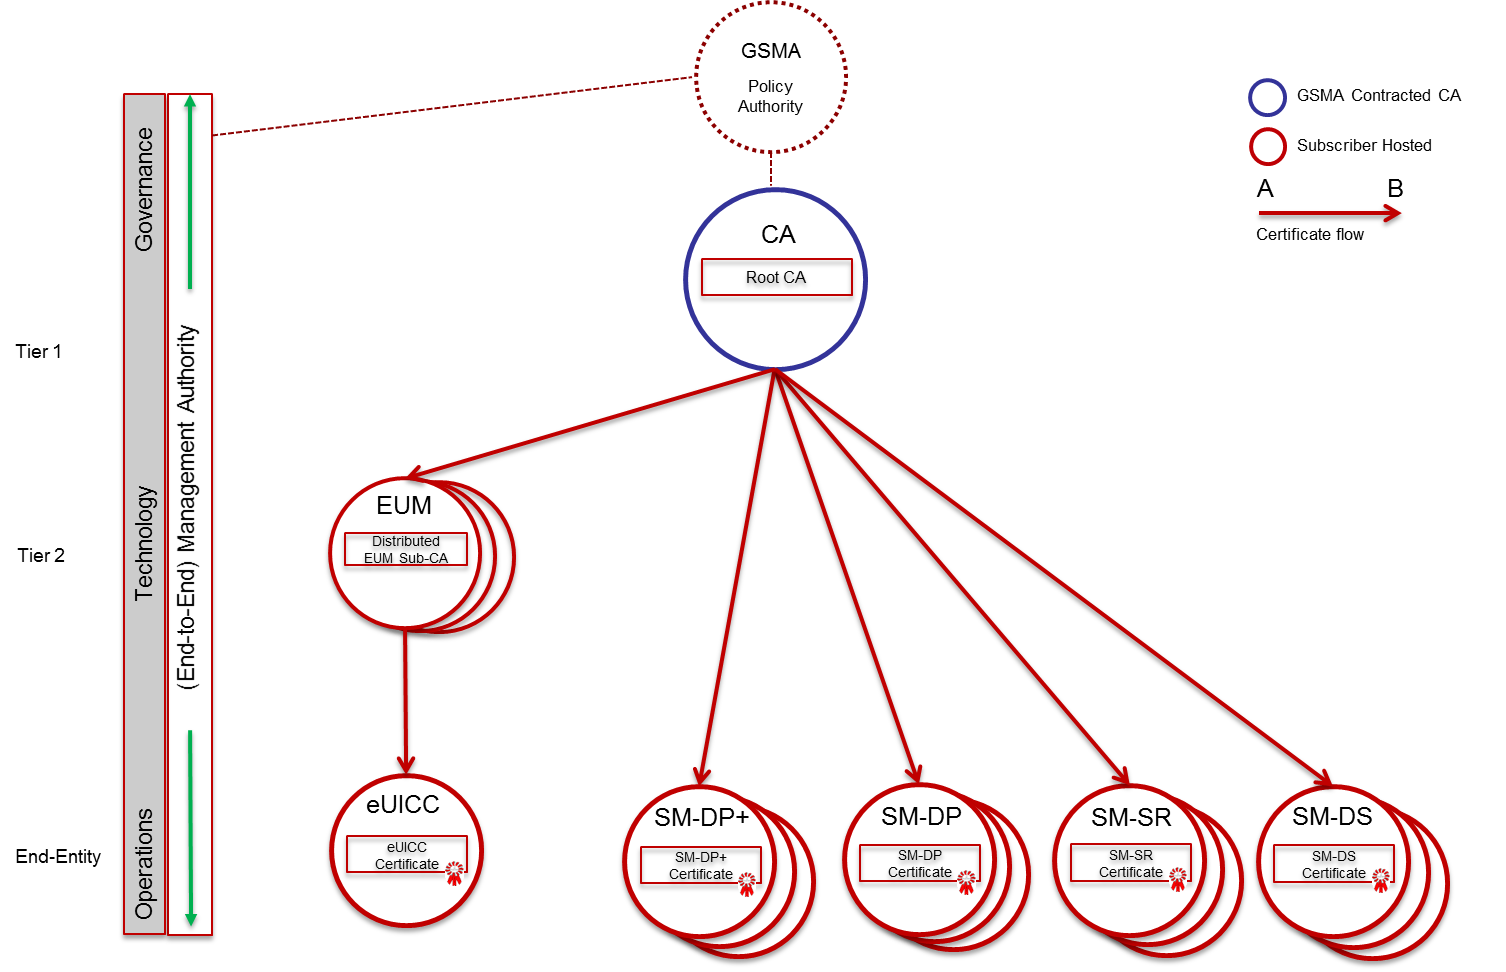 Gsma root certificate issuer for remote sim provisioning security and trust are an integral part of the gsmas specification for remote sim provisioning connections the ability to provision operator subscription 1betcityfo Image collections